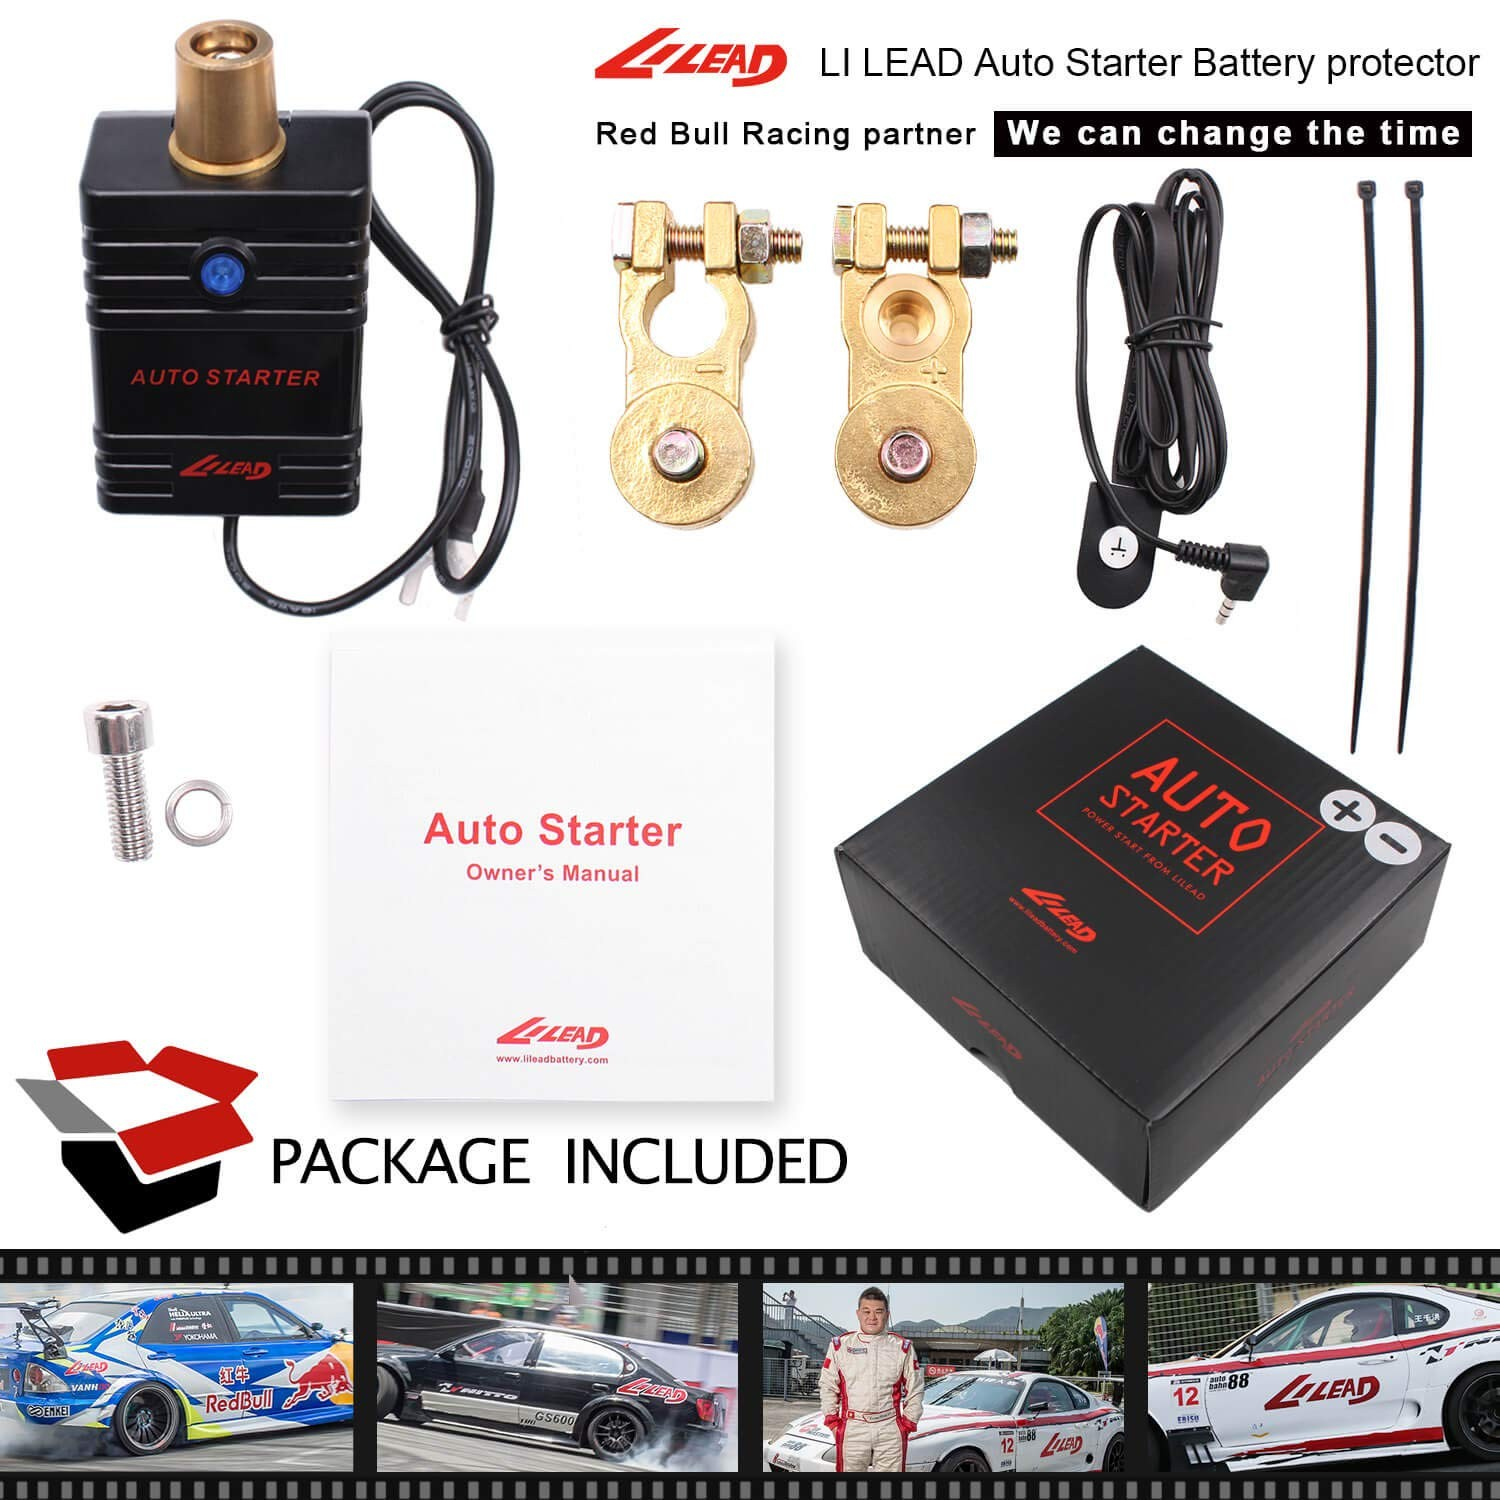 LILEAD New products---batteryless jump starter/ automatic battery protector